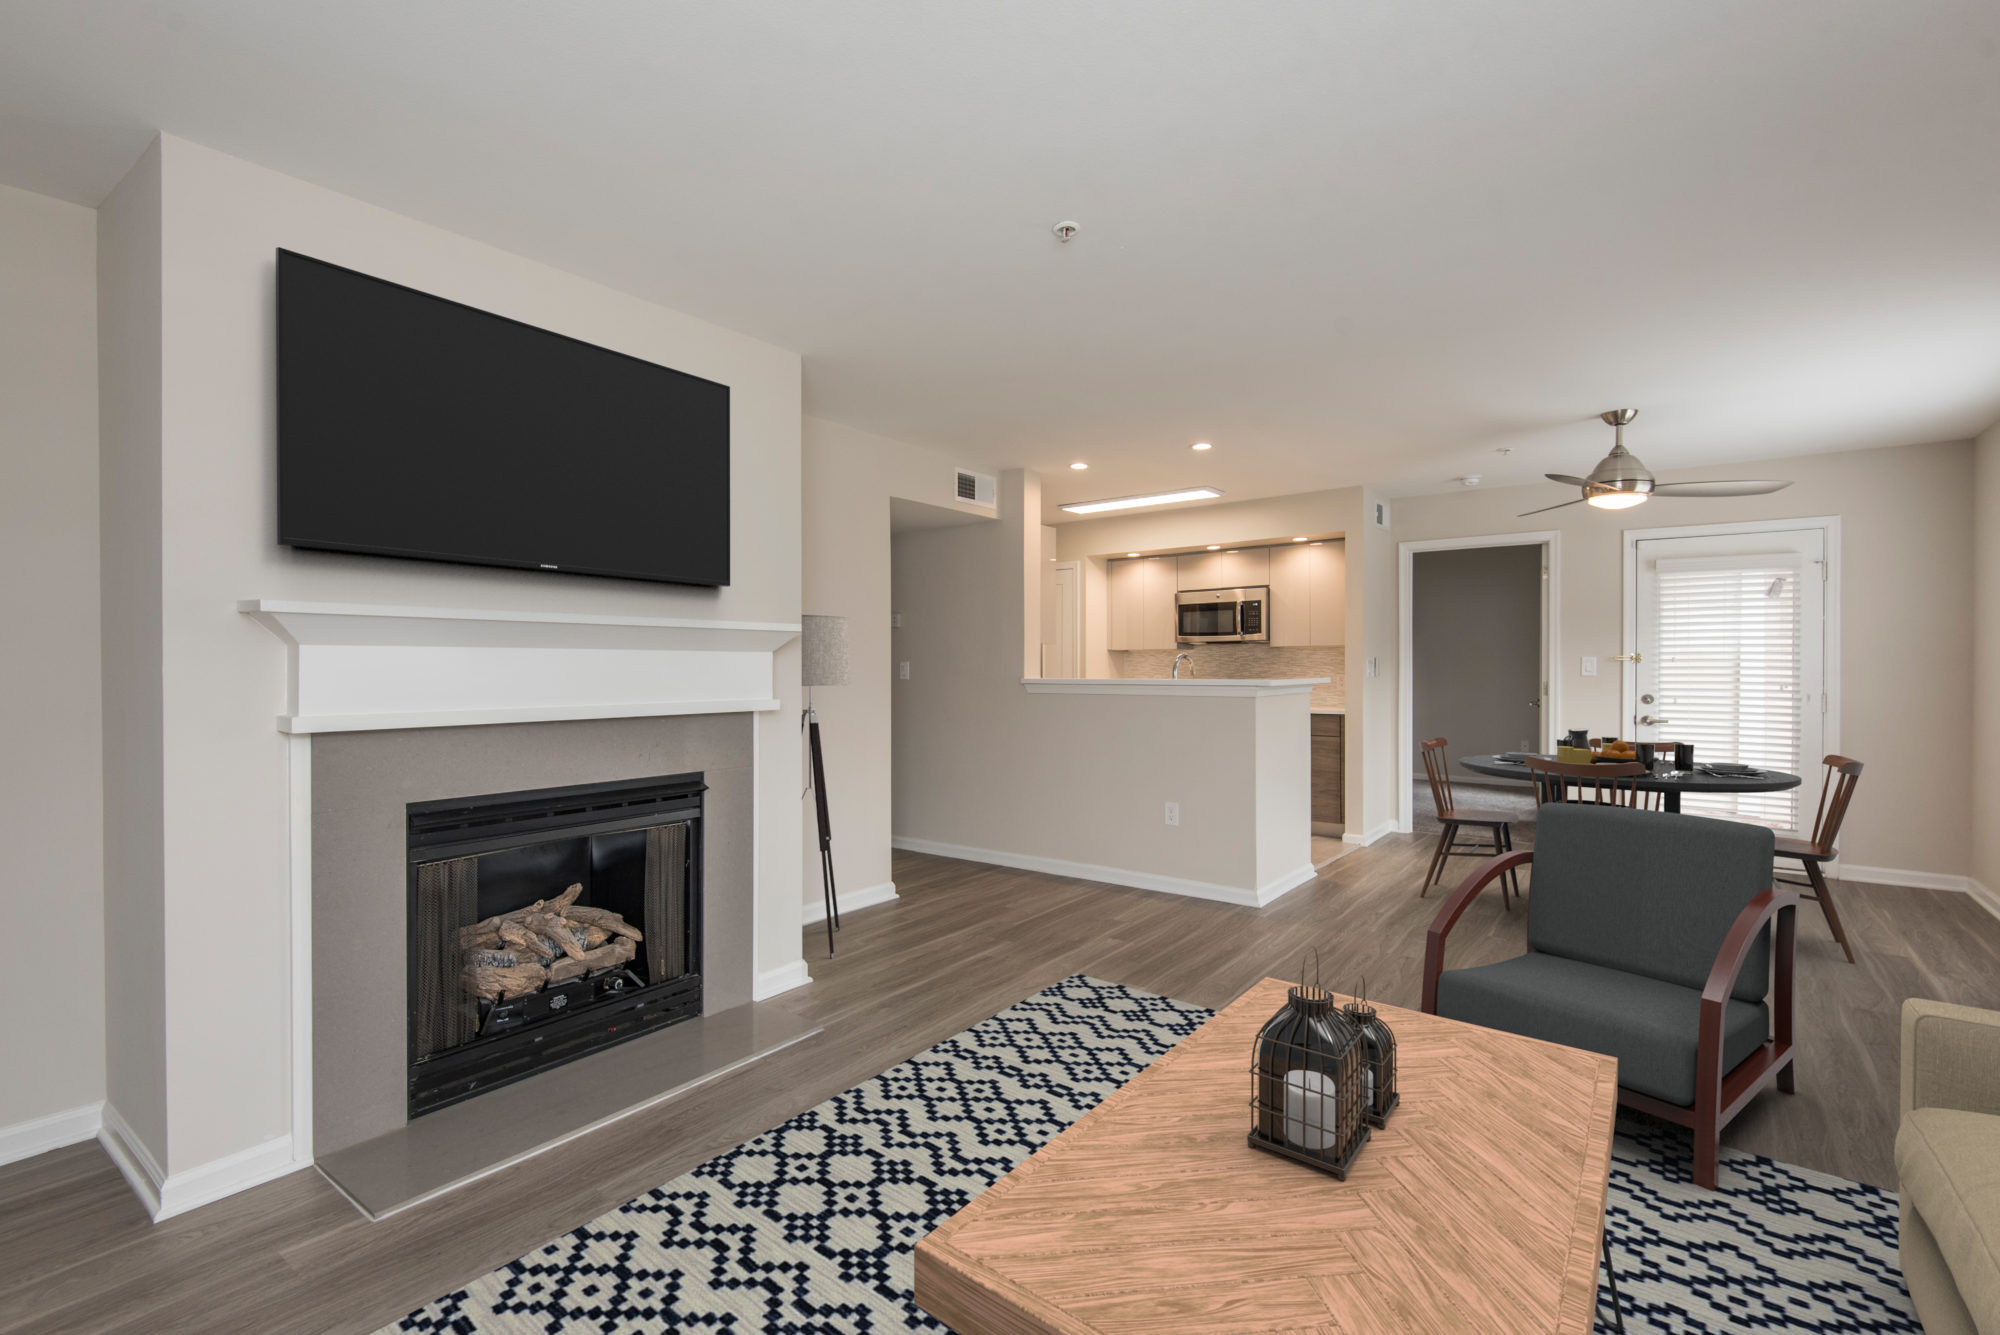 apartment living room with gas fireplace looking toward a spacious kitchen and eat-in area at Edge of Yardley